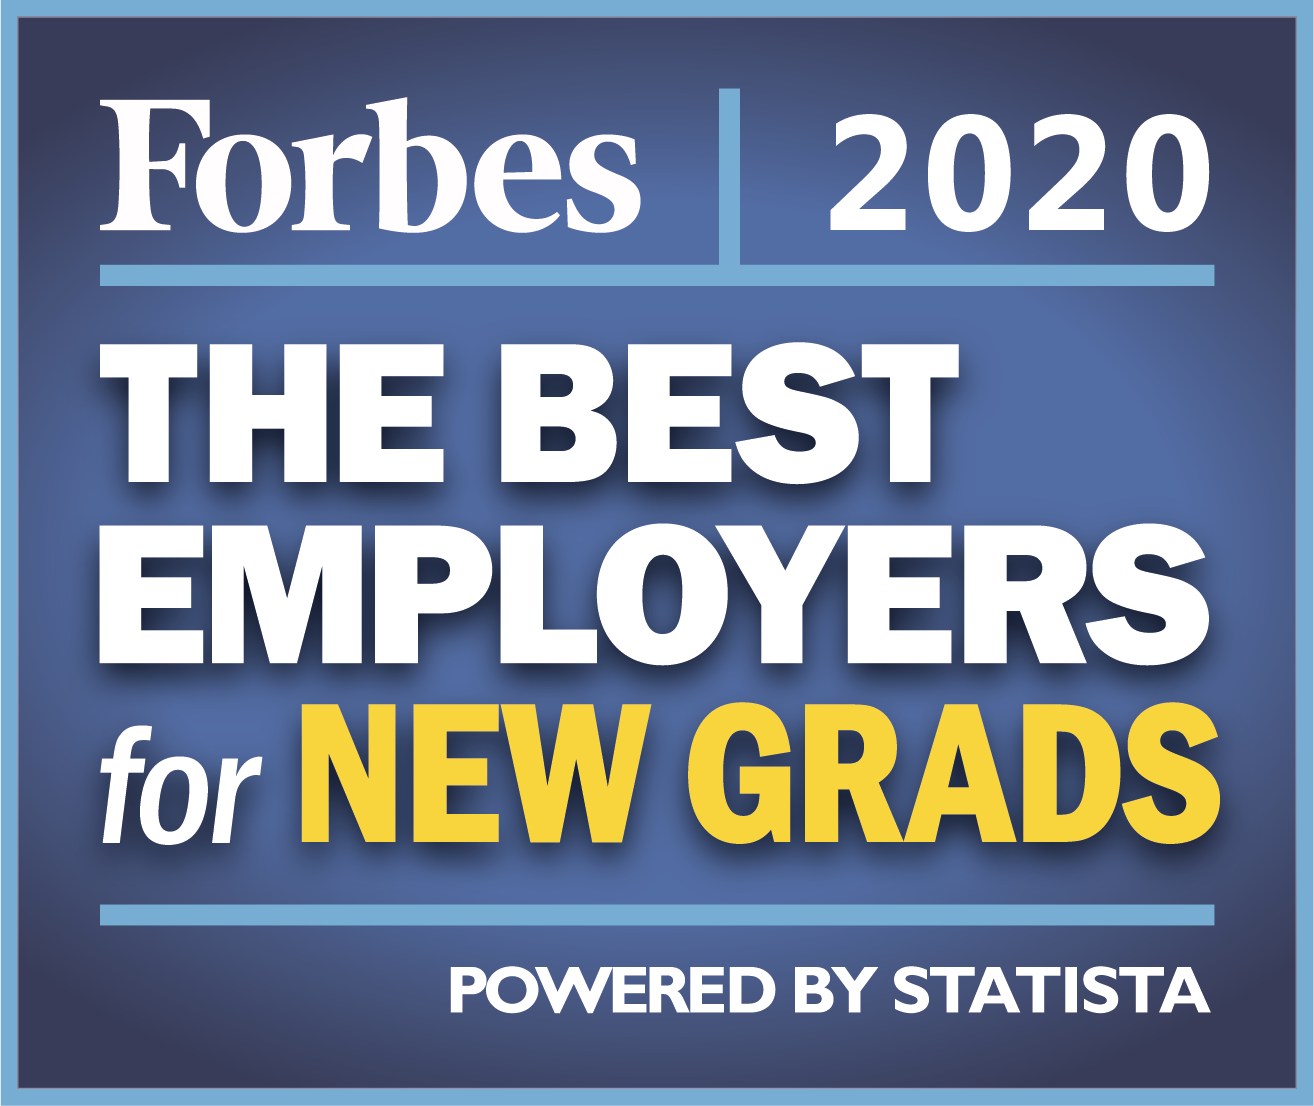 Forbes Best Employers for New Grads 2020